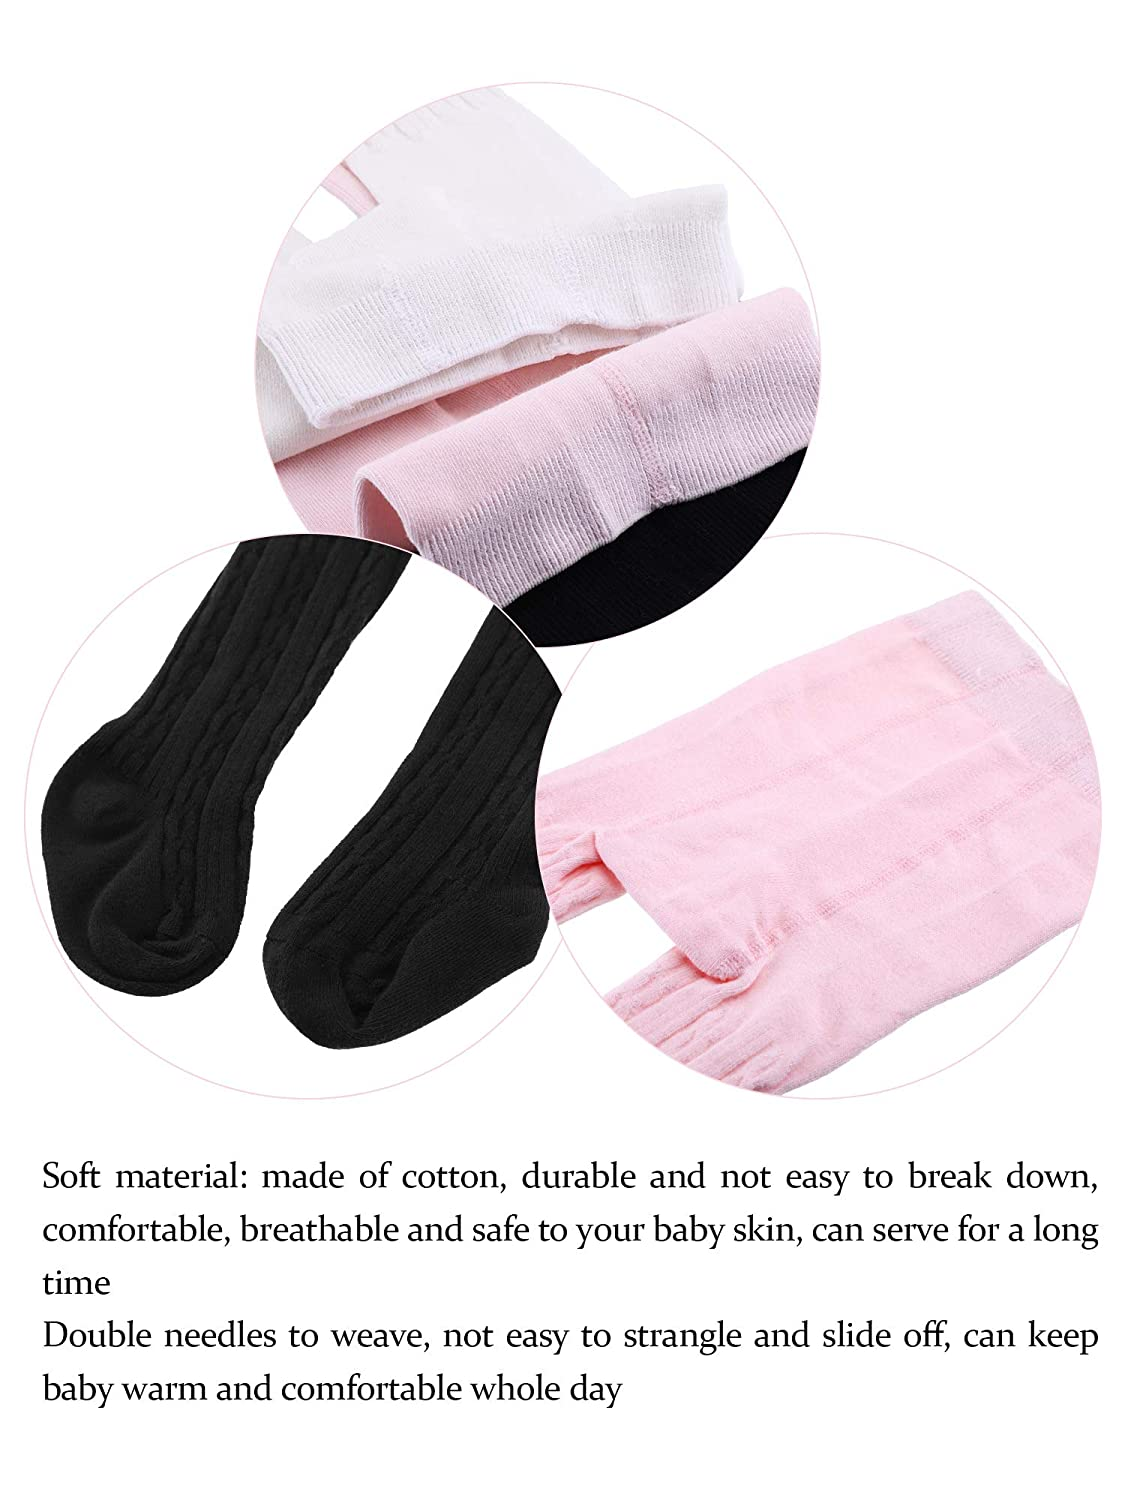 Sumind 4 Pieces Toddler Tights Baby Leg Warmers Solid Color Winter Leggings for Infant Boys and Girls 4 Colors